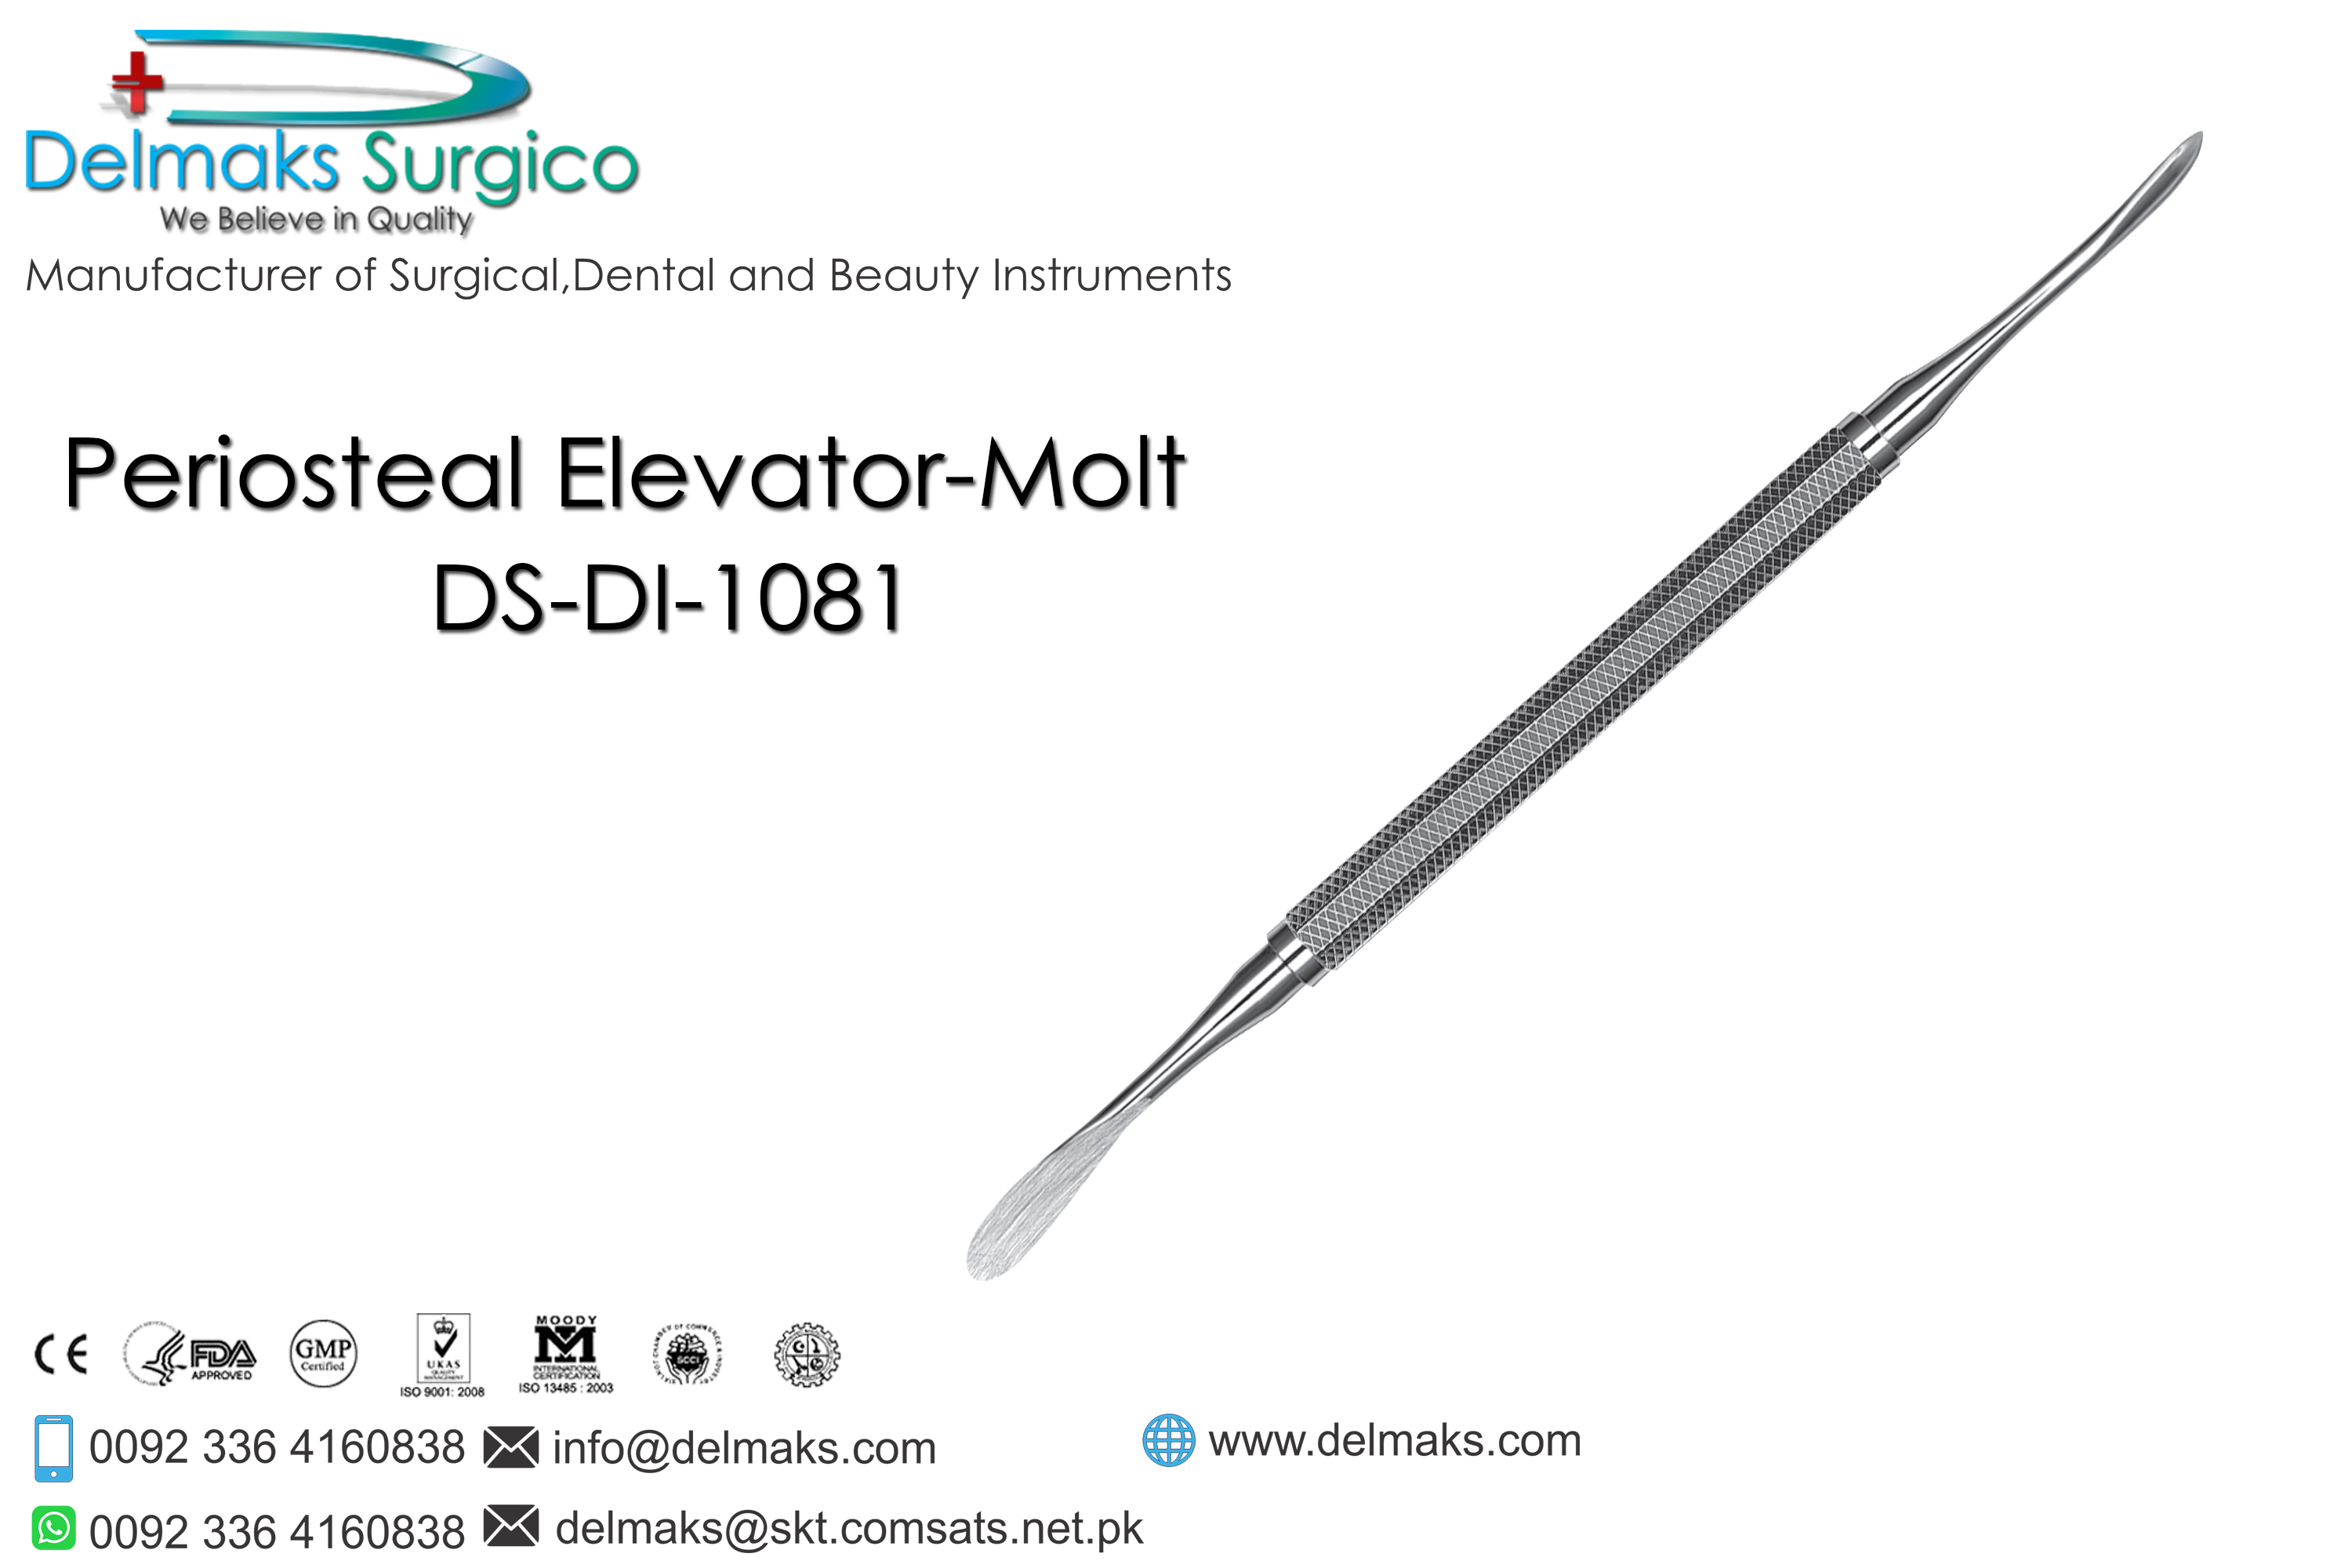 Periosteal Elevator Molt-Oral And Maxillofacial Surgery Instruments-Dental Instruments-Delmaks Surgico